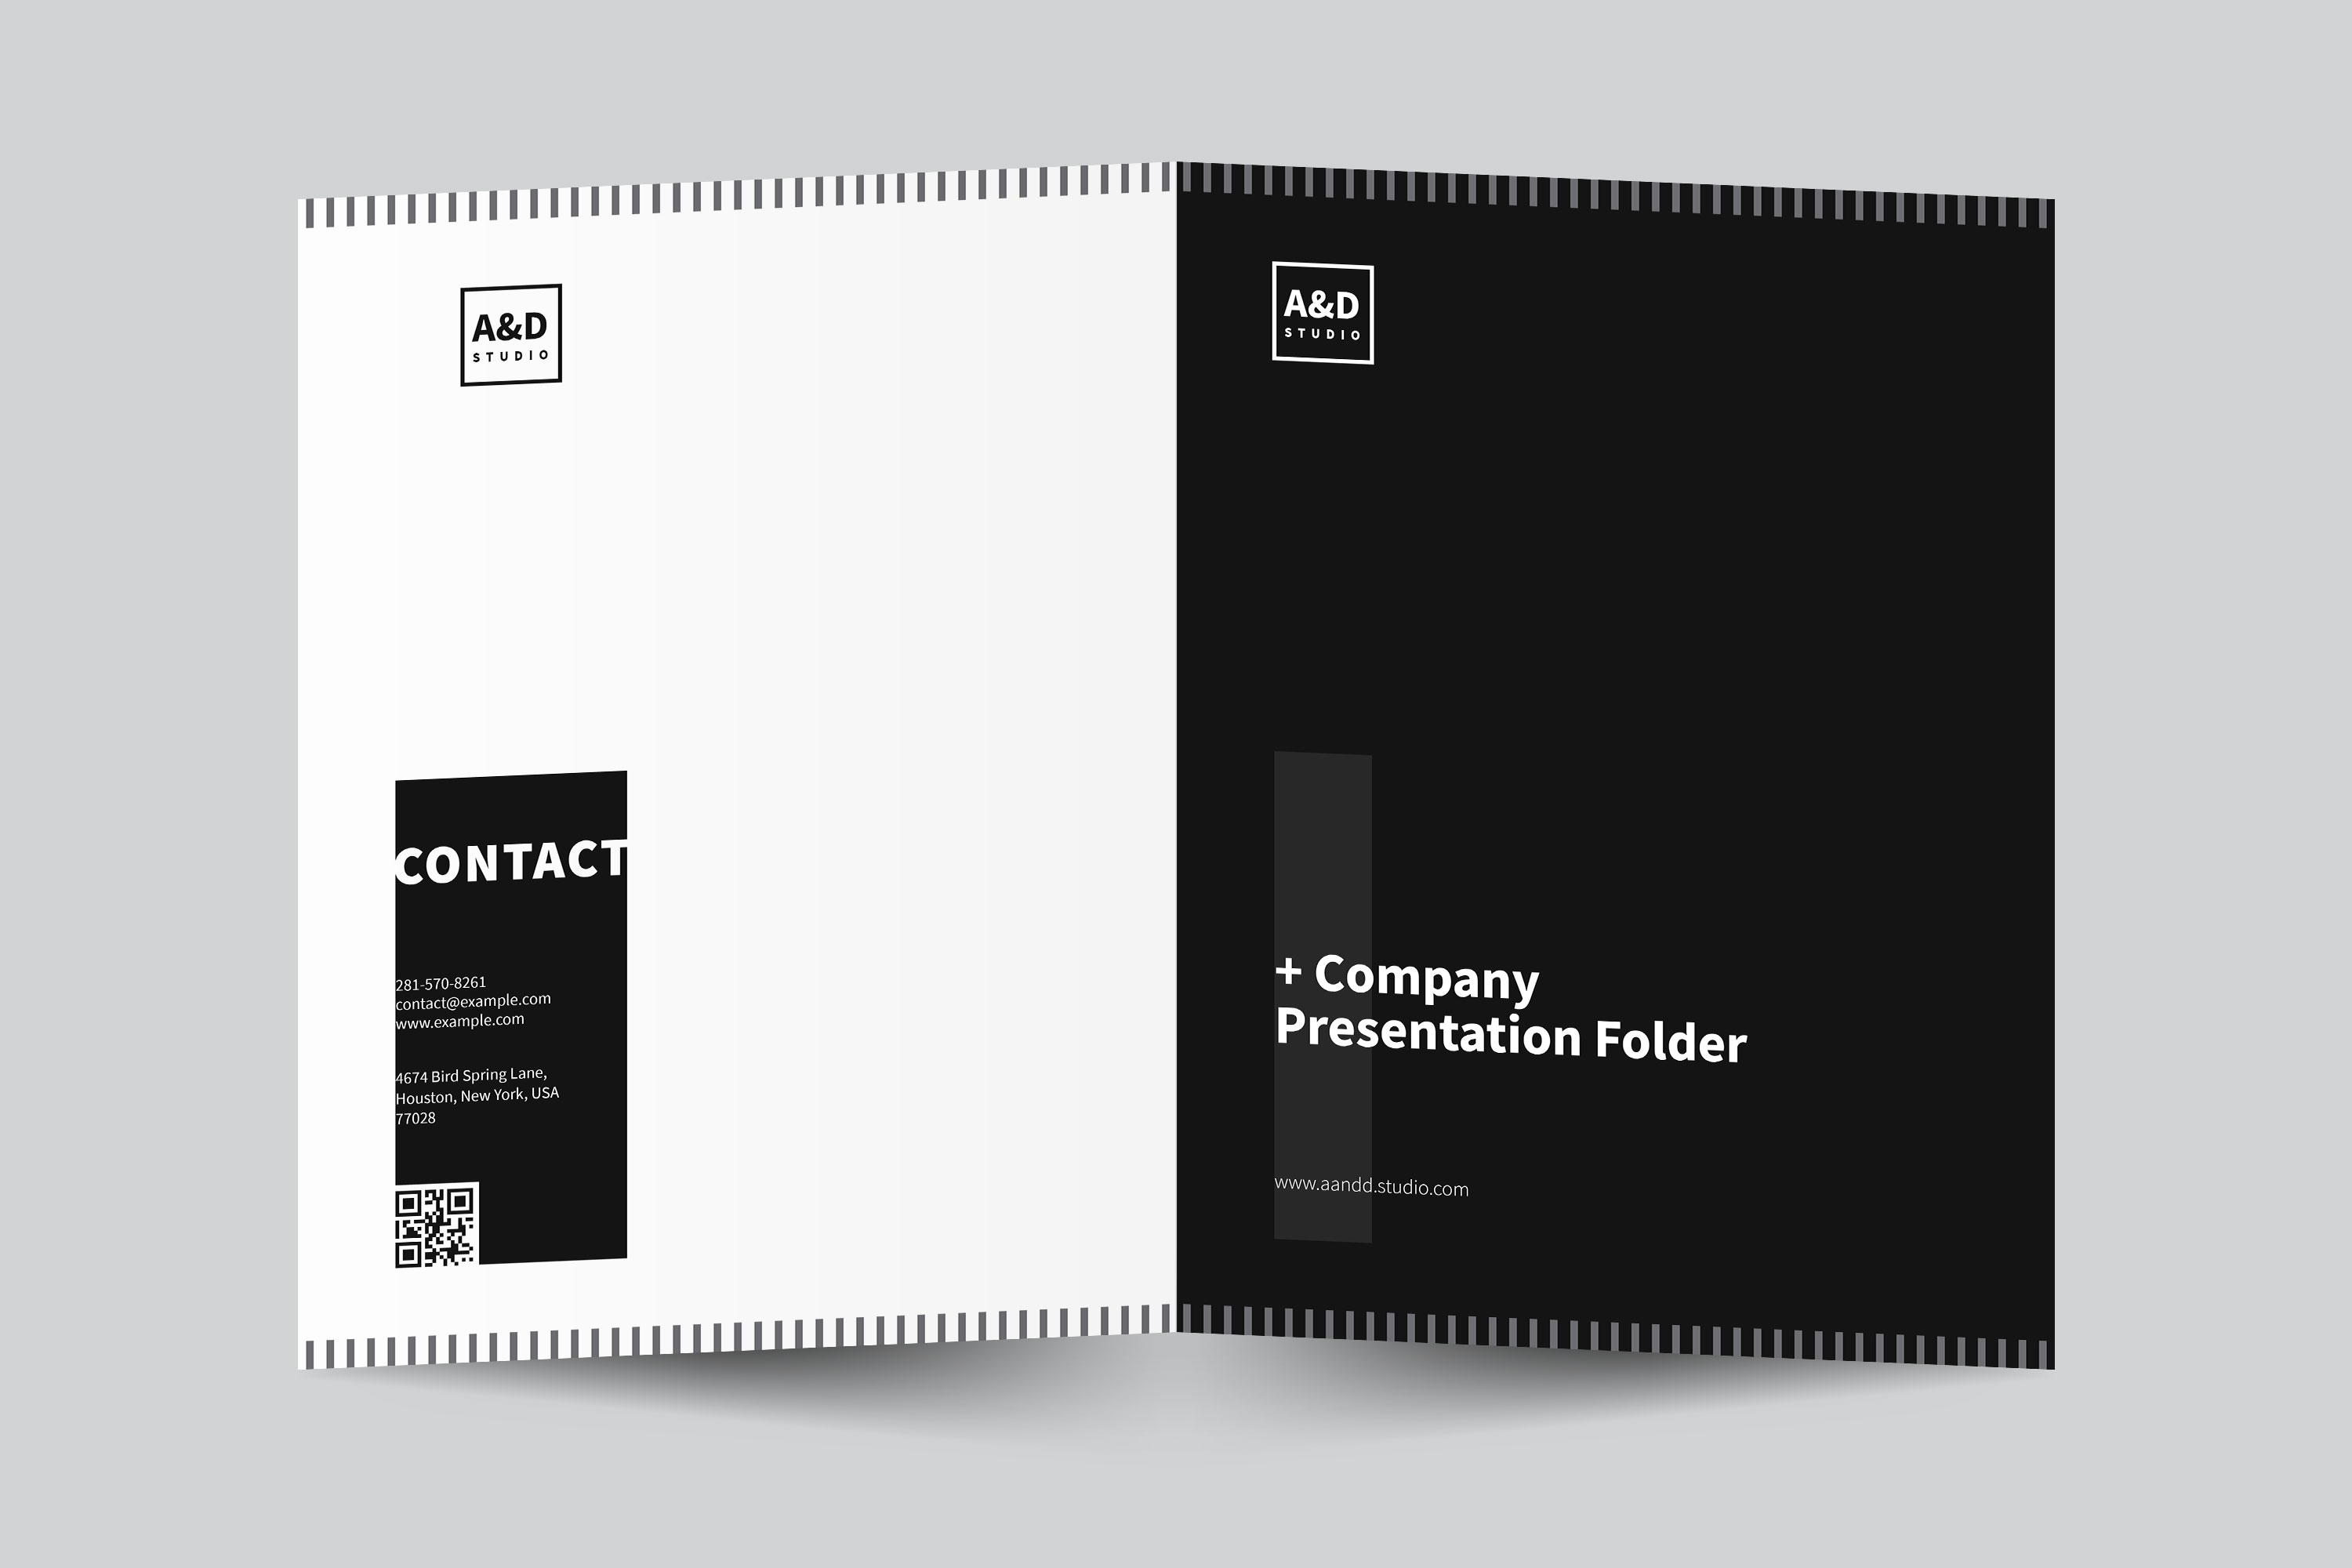 Minimal Corporate Identity Branding Set example image 3